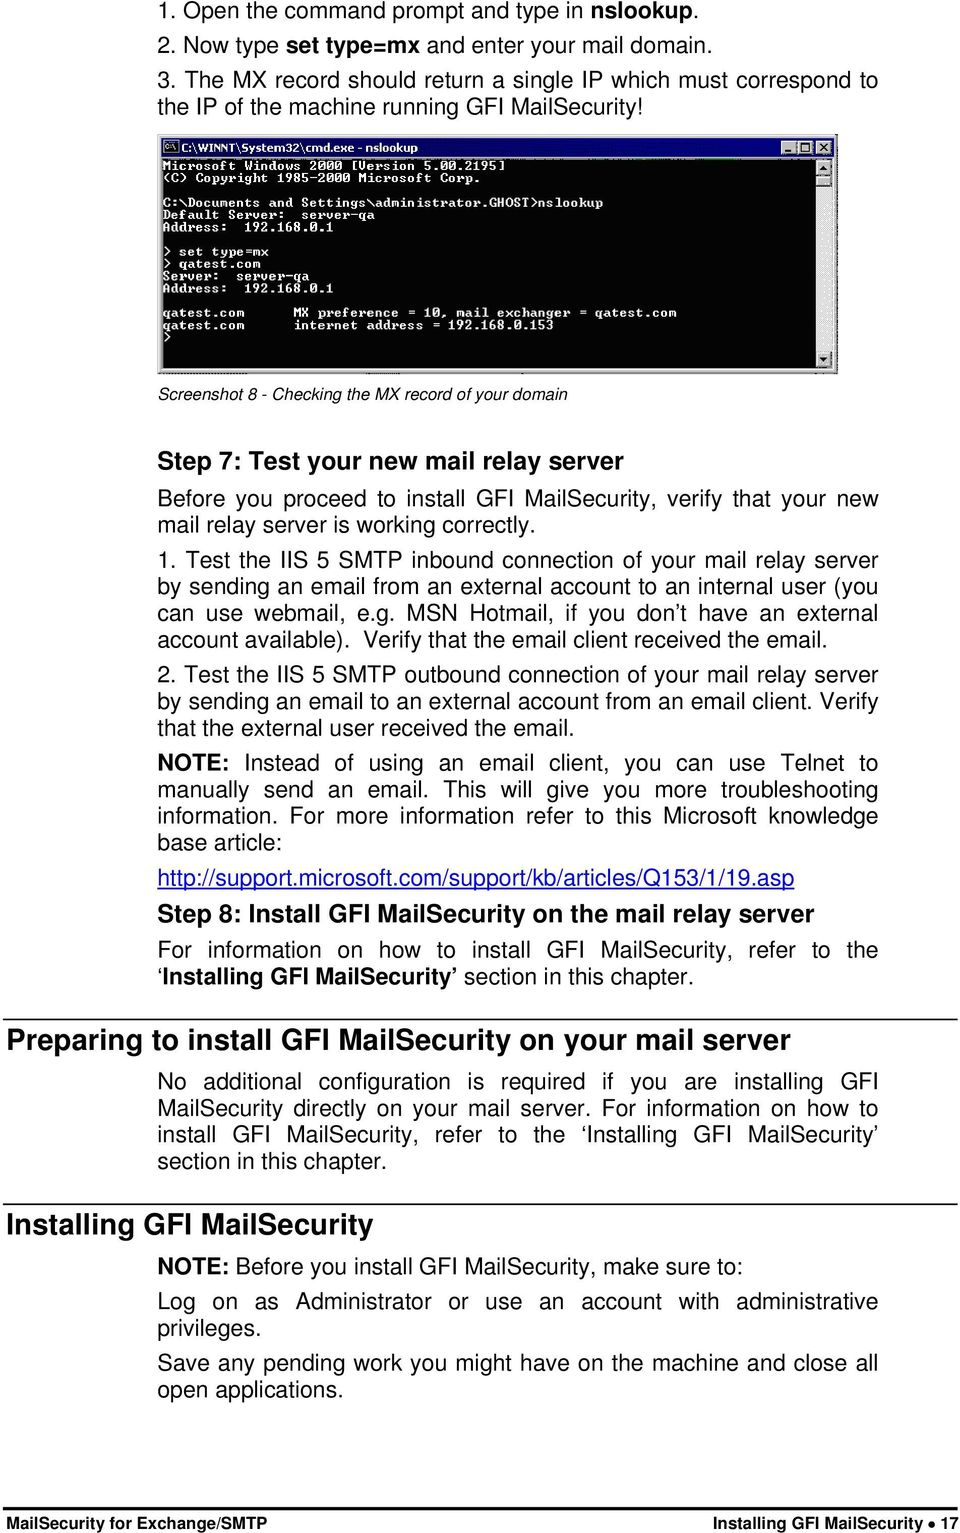 Screenshot 8 - Checking the MX record of your domain Step 7: Test your new mail relay server Before you proceed to install GFI MailSecurity, verify that your new mail relay server is working